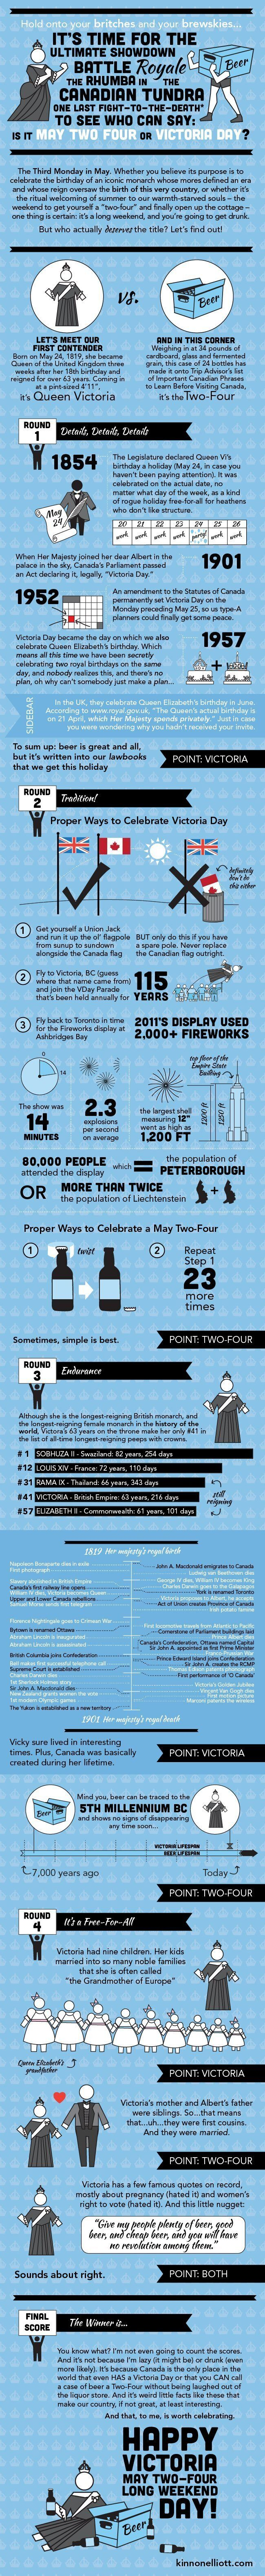 Victoria Day vs. May 2-4: What The May Long Weekend Signifies To